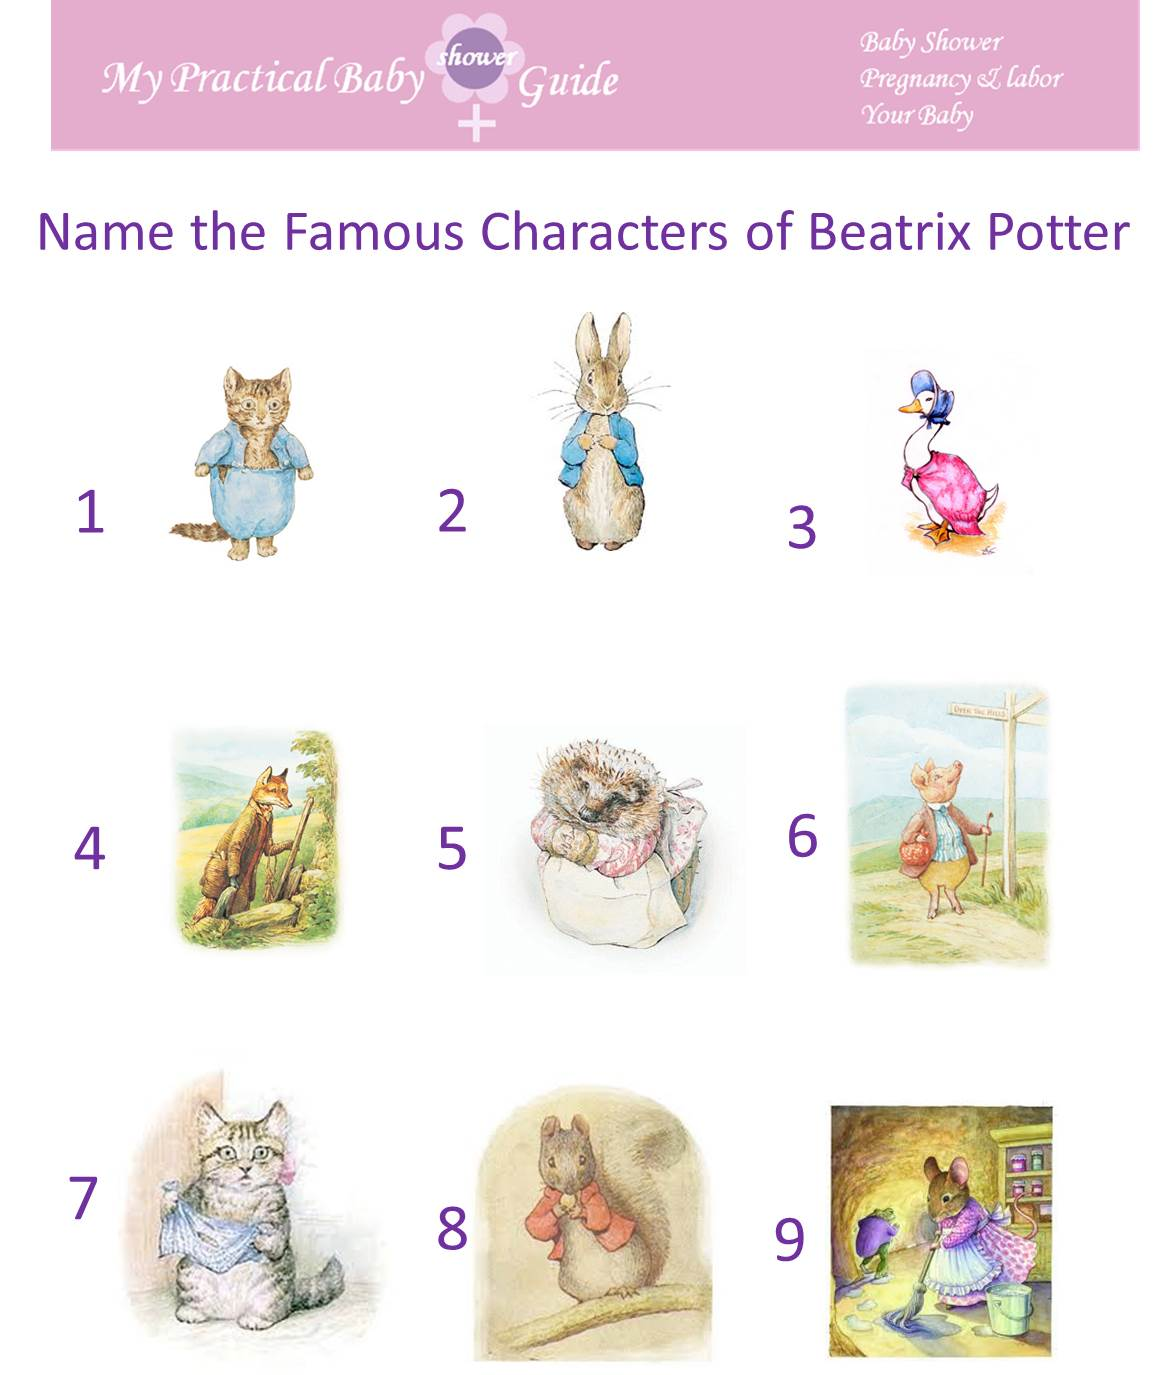 Free Printable Name the Famous Characters of Beatrix Potter Baby Shower Game